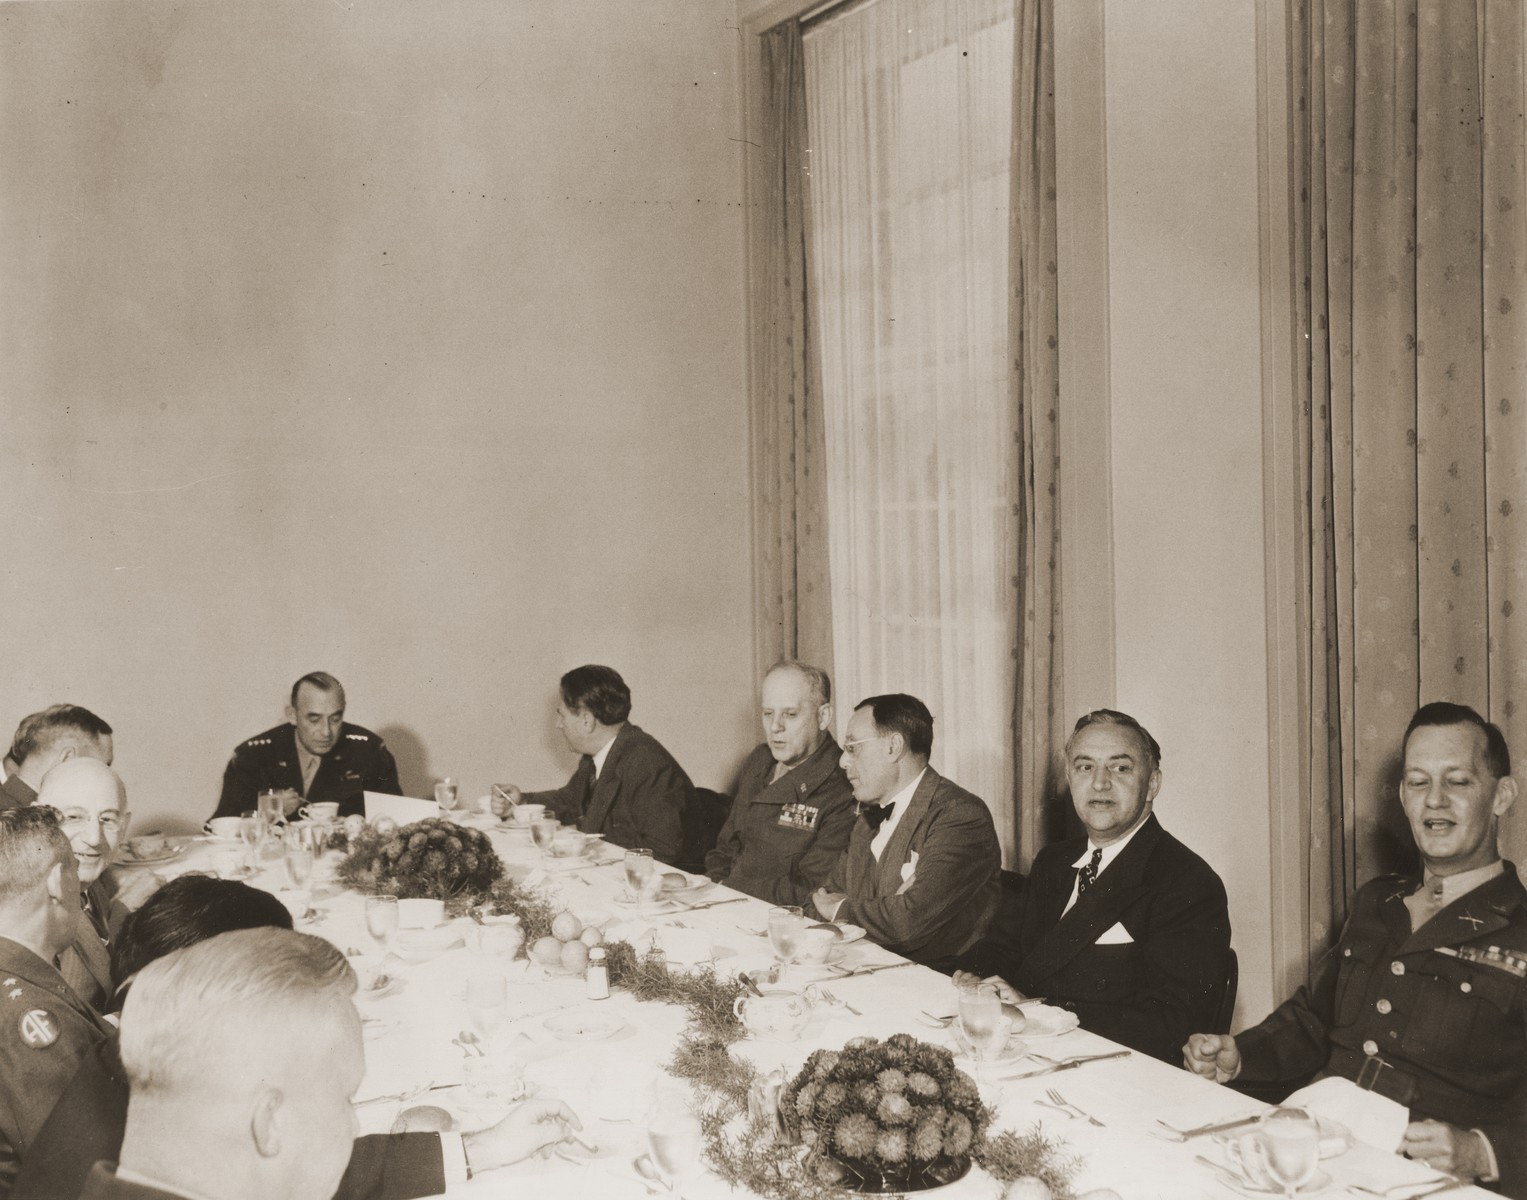 Visiting American Jewish leaders meet over dinner with the commanders of the American army of occupation in Germany.  The meeting took place at military headquarters located in the former I.G. Farben facility in Frankfurt am Main.  Pictured counter-clockwise from the right are: unknown; Rabbi Phillip Bernstein; Philip Forman; General Clarence Huebner; Nahum Goldmann; General Joseph McNarney; Rabbi Stephen Wise; unknown; Jacob Blaustein; unknown; unknown; and Colonel George Scithers.